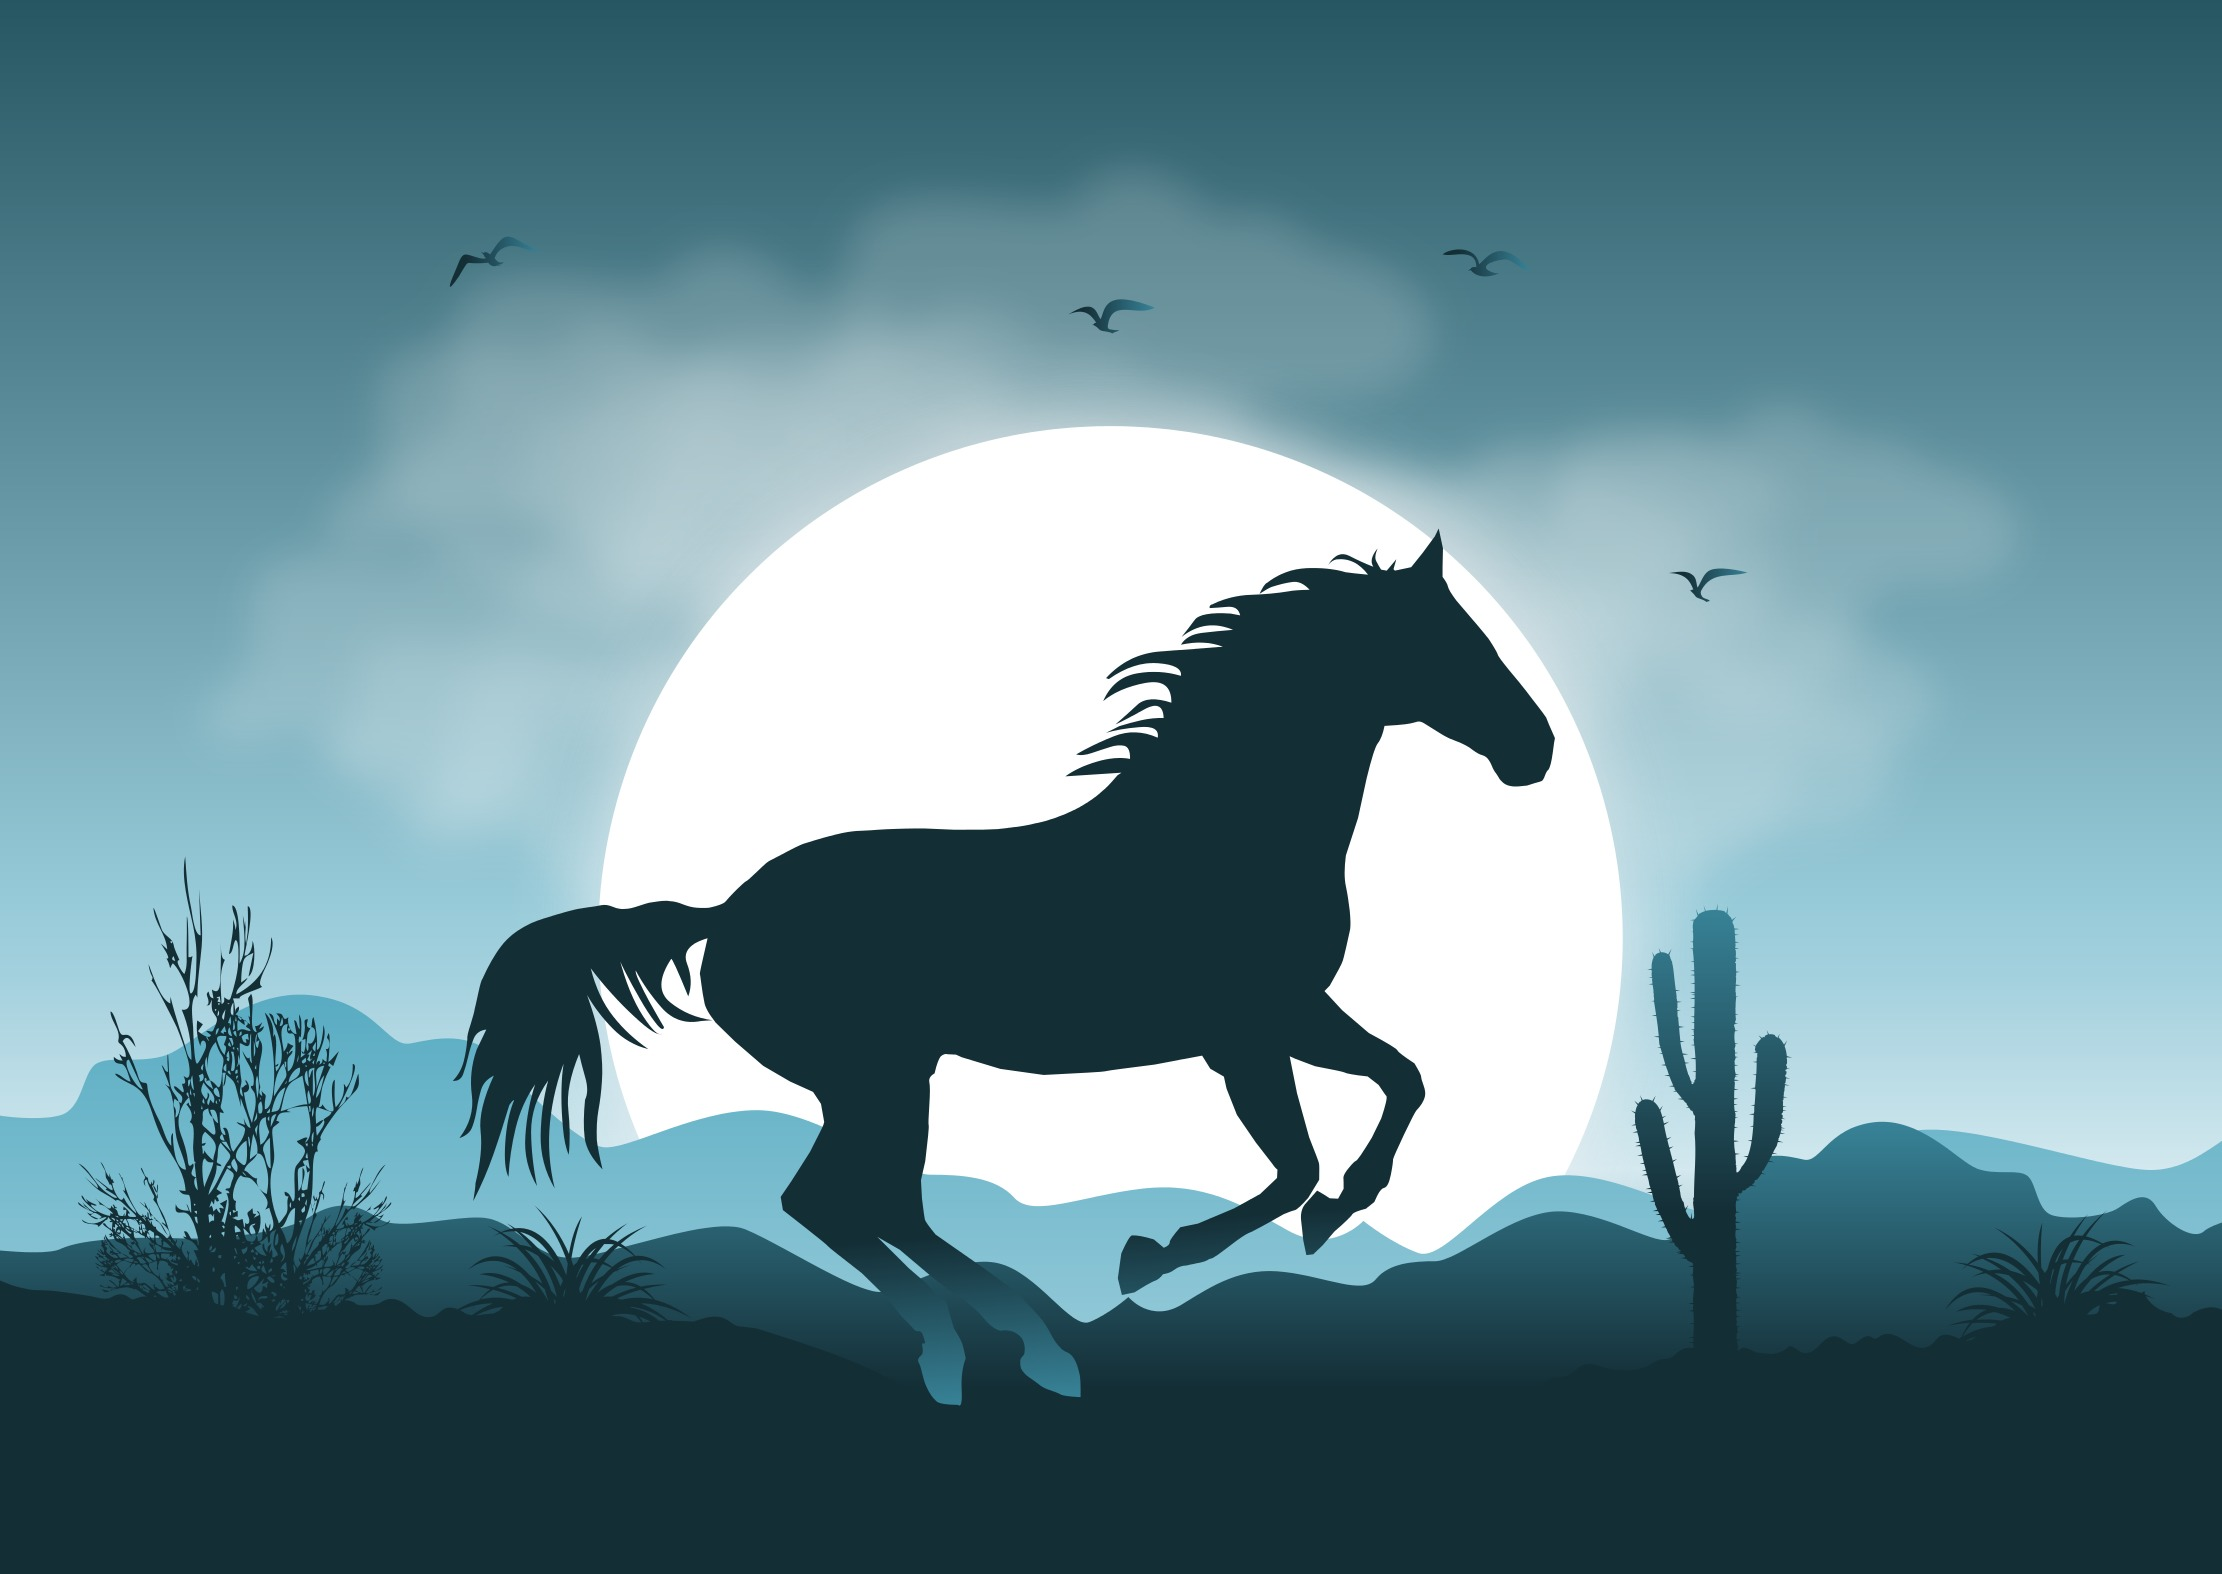 Arizona landscape and horse clipart clipart free stock Western Landscape Free Vector Art - (242 Free Downloads) clipart free stock